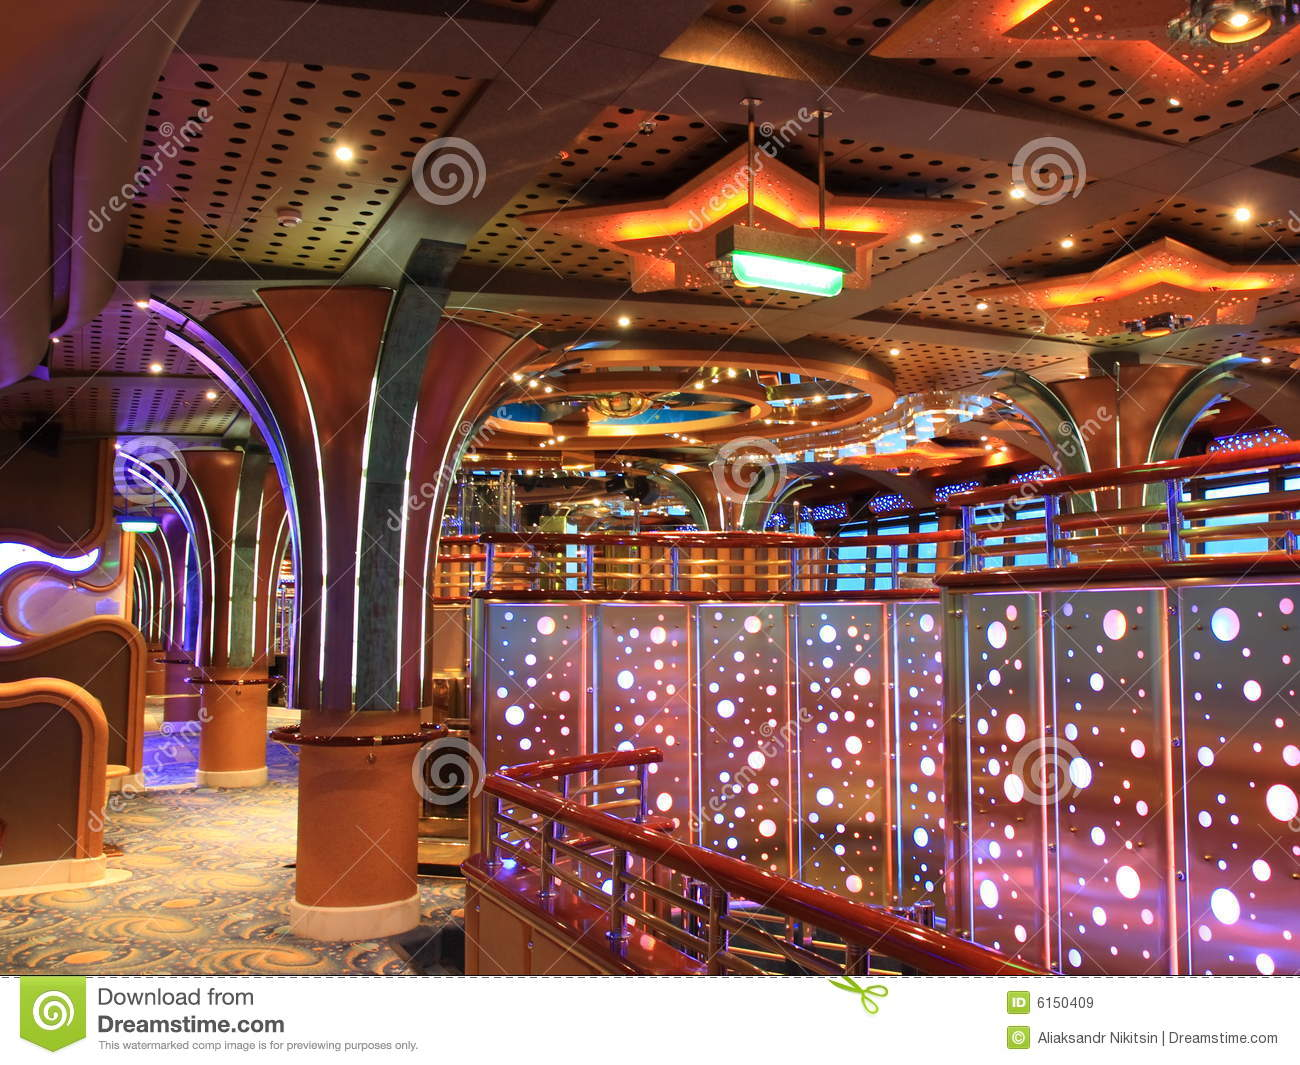 Cruise Ship Interior Royalty Free Stock Images  Image 6150409